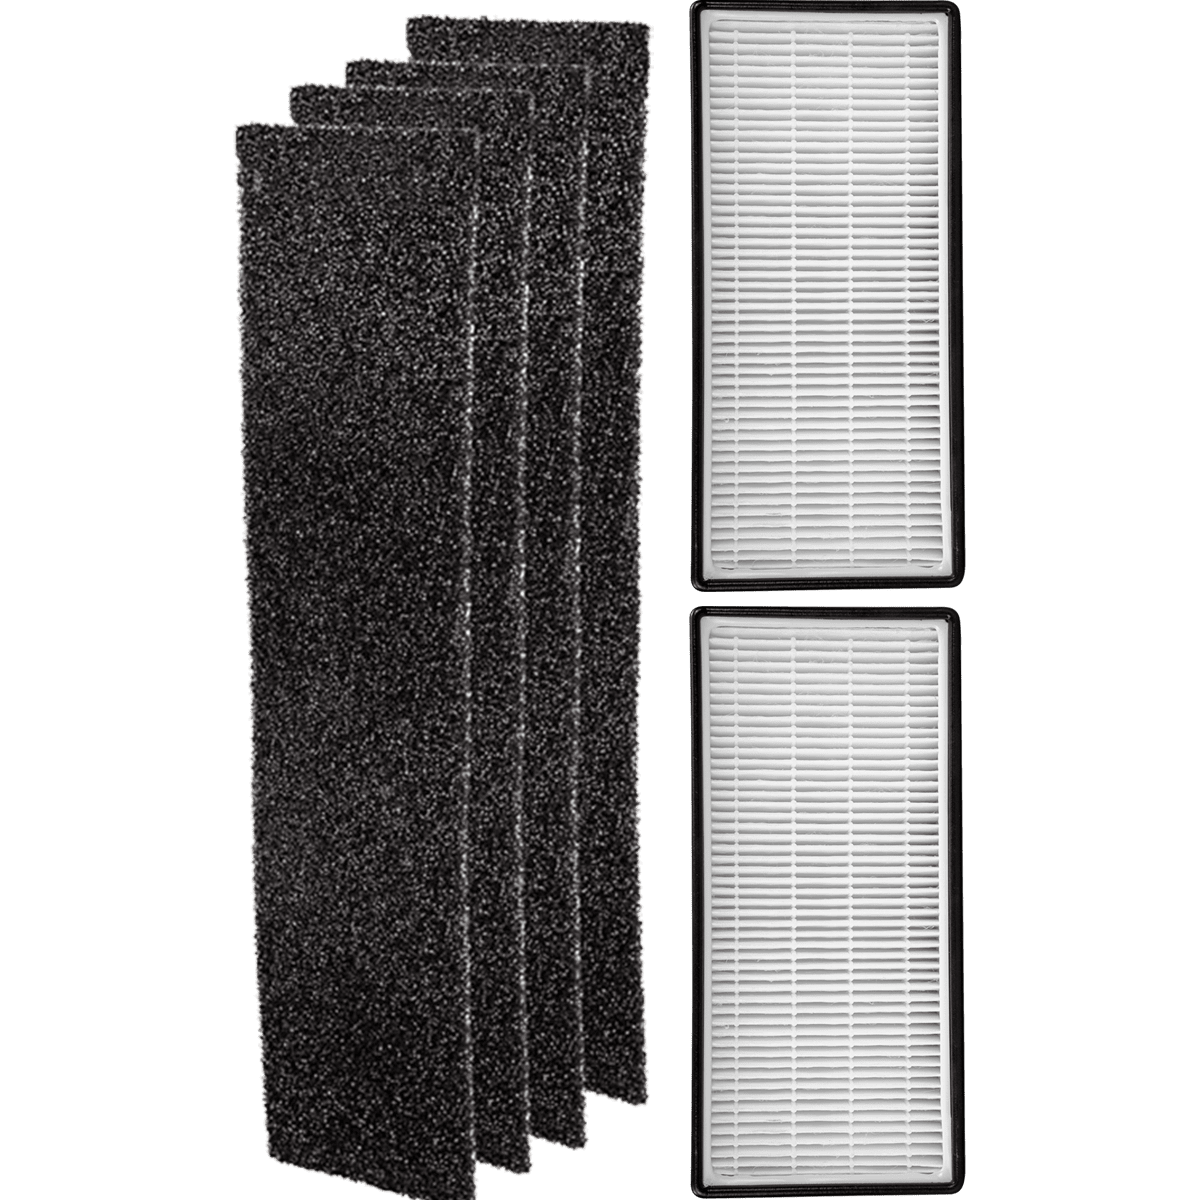 Master Brands Replacement Filter Kit for Whirlpool Tower Air Purifiers wh6376k